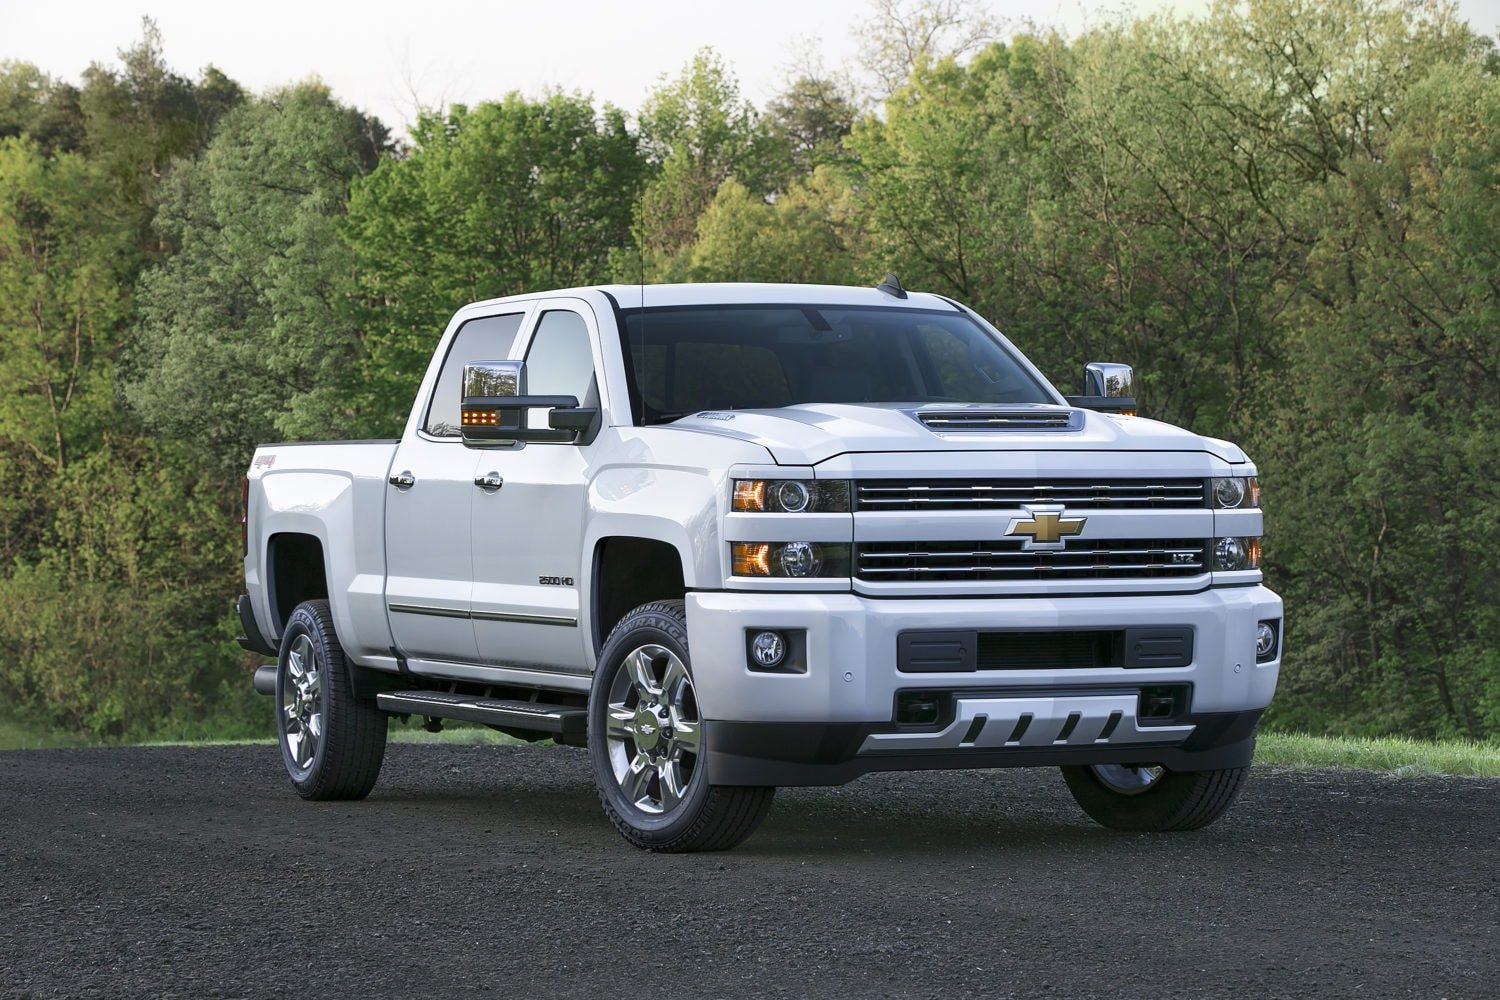 Truck chevy 2500hd trucks 2017 Silverado 2500HD: Big Truck, Big Technology - Focus Daily News